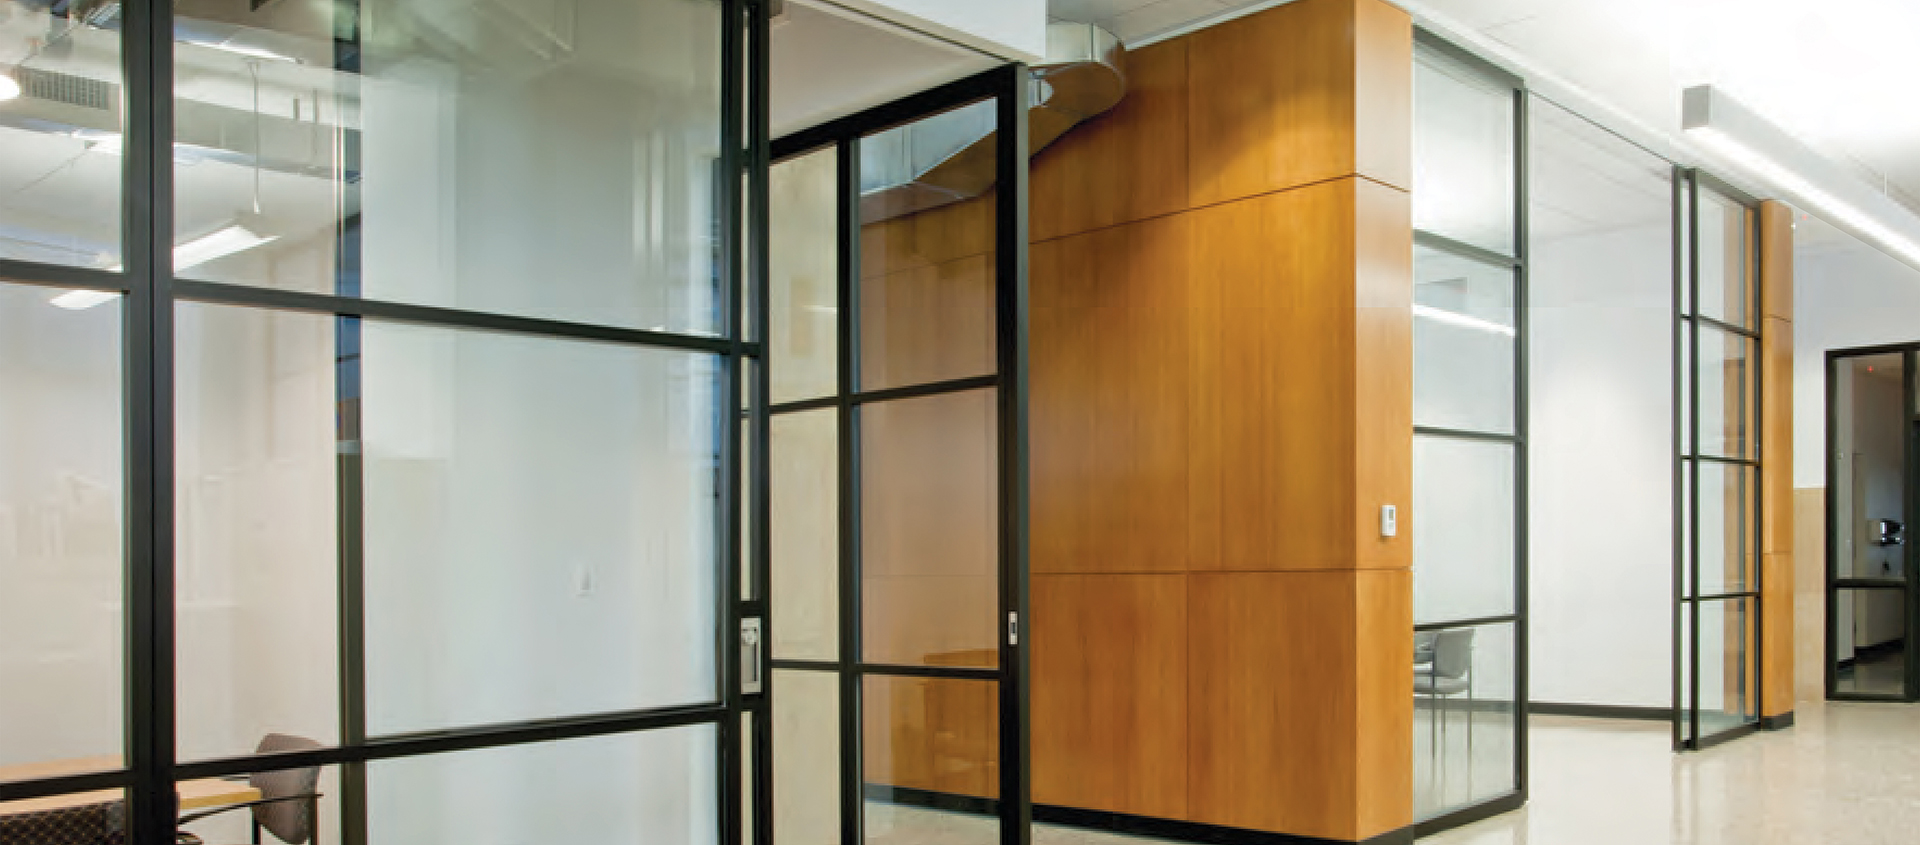 Glass wall systems by stylesglass modernfoldstyles for Sliding glass wall panels